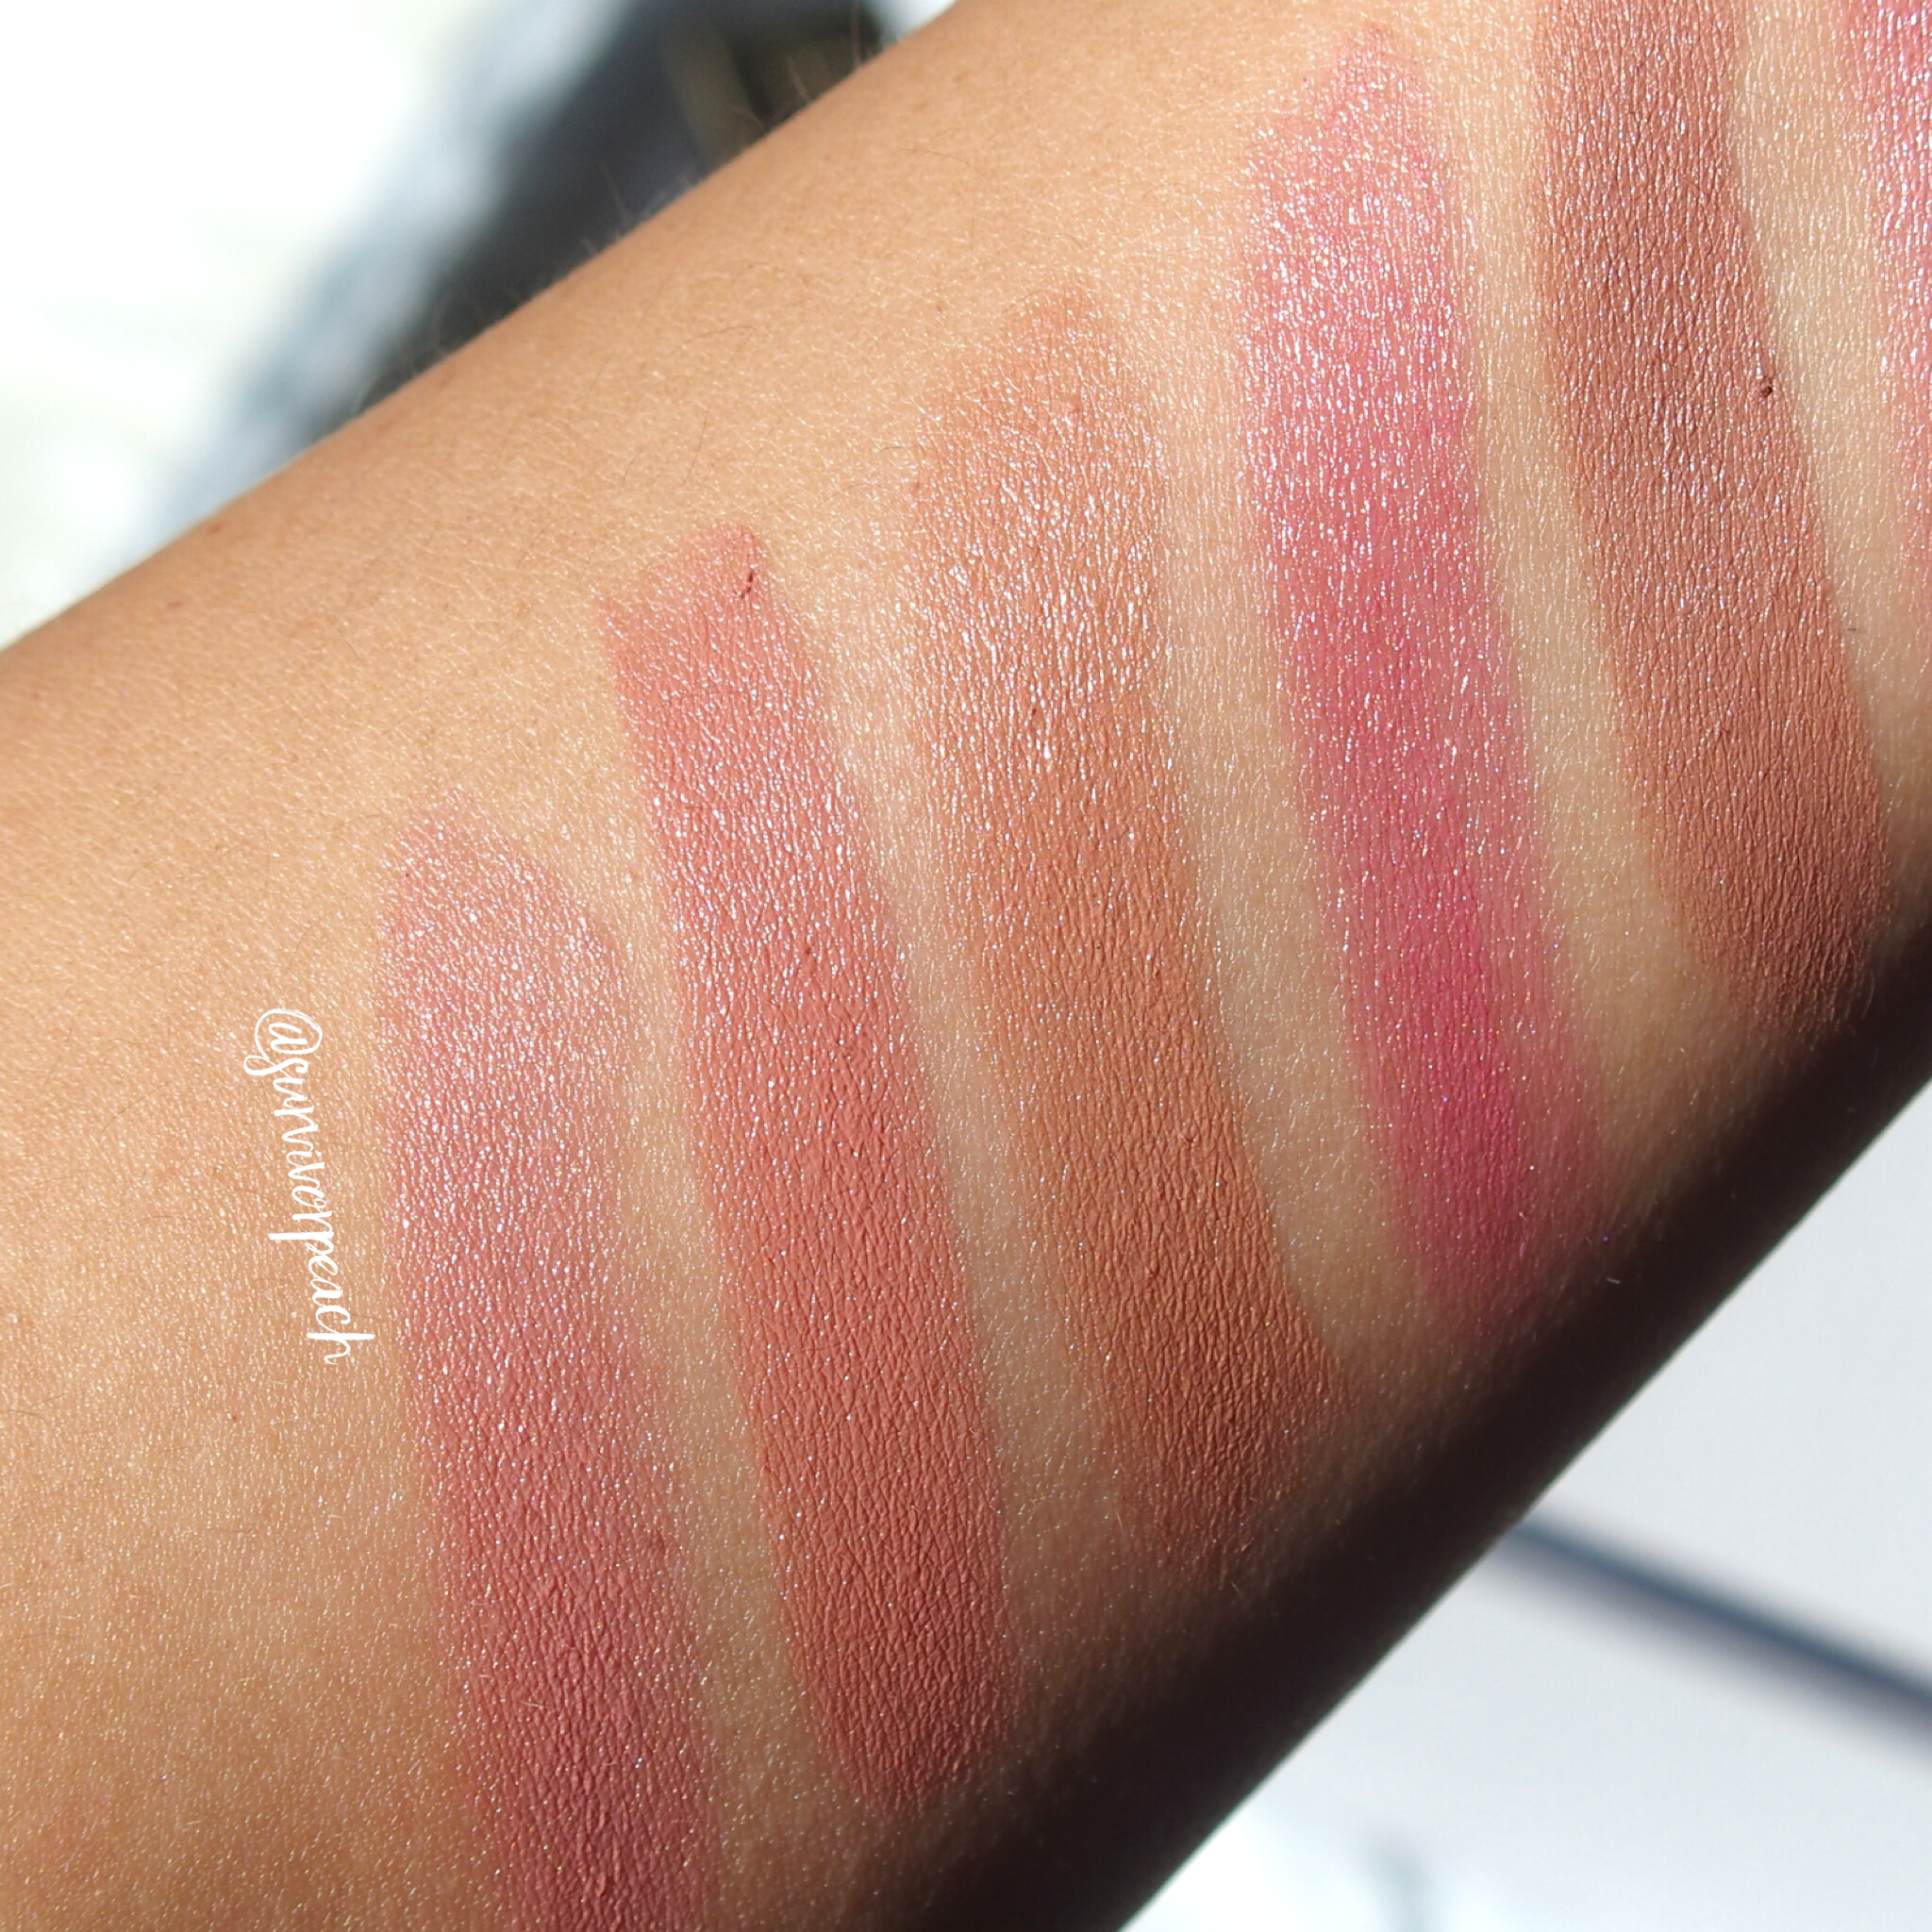 Swatches of the Tom Ford Lips and Boys in Evan, Ansel, Bradley, Rover, Bryan